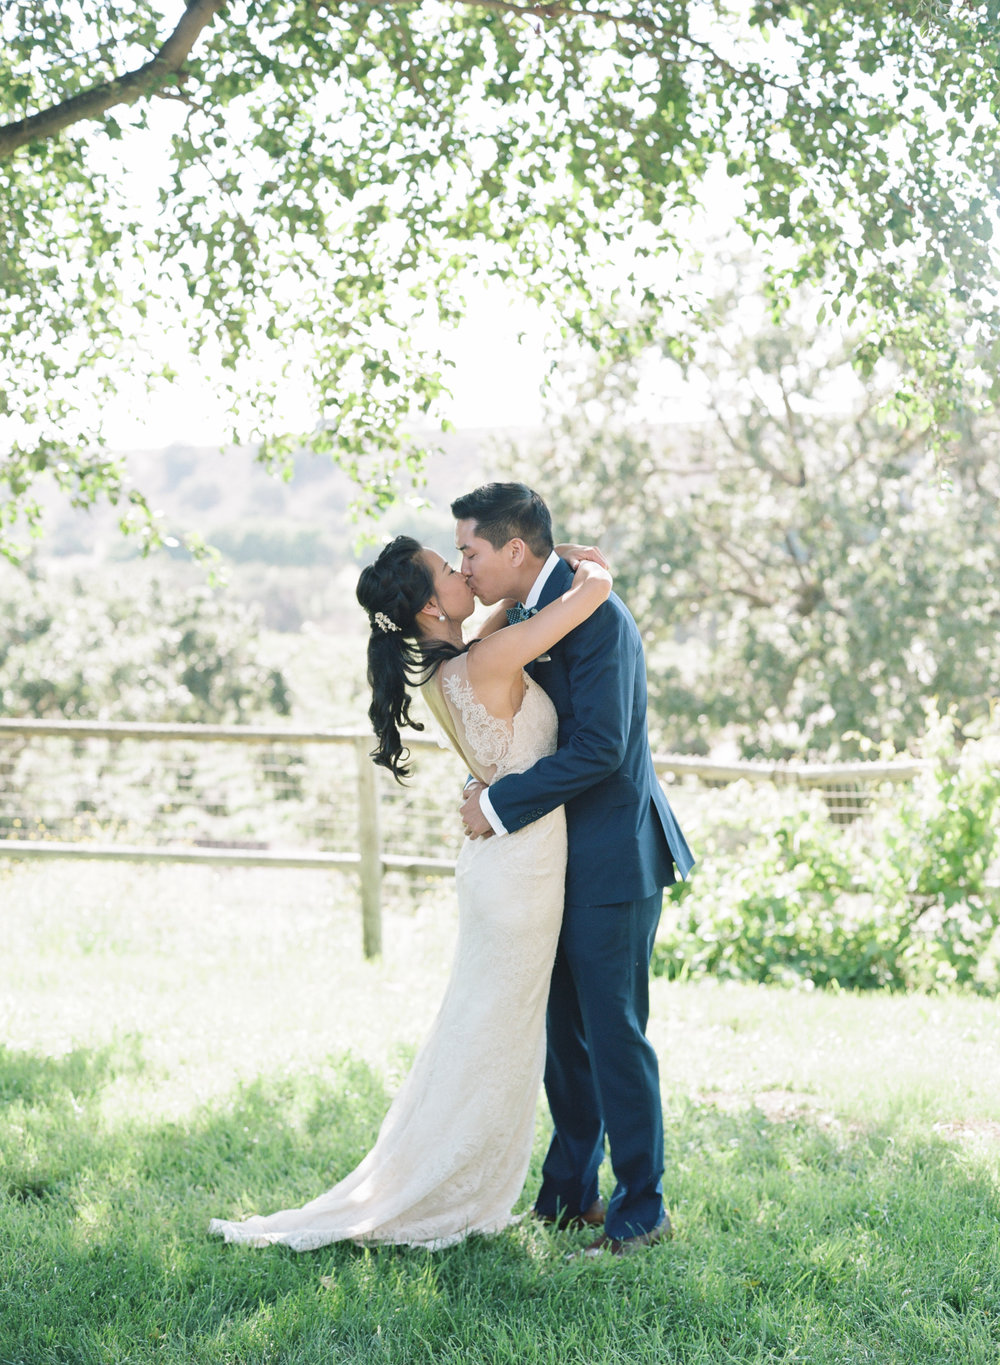 santabarbarawedding.com | Photo: Beaux Arts Photographie | Playful Winery Wedding at Firestone Winery Santa Ynez